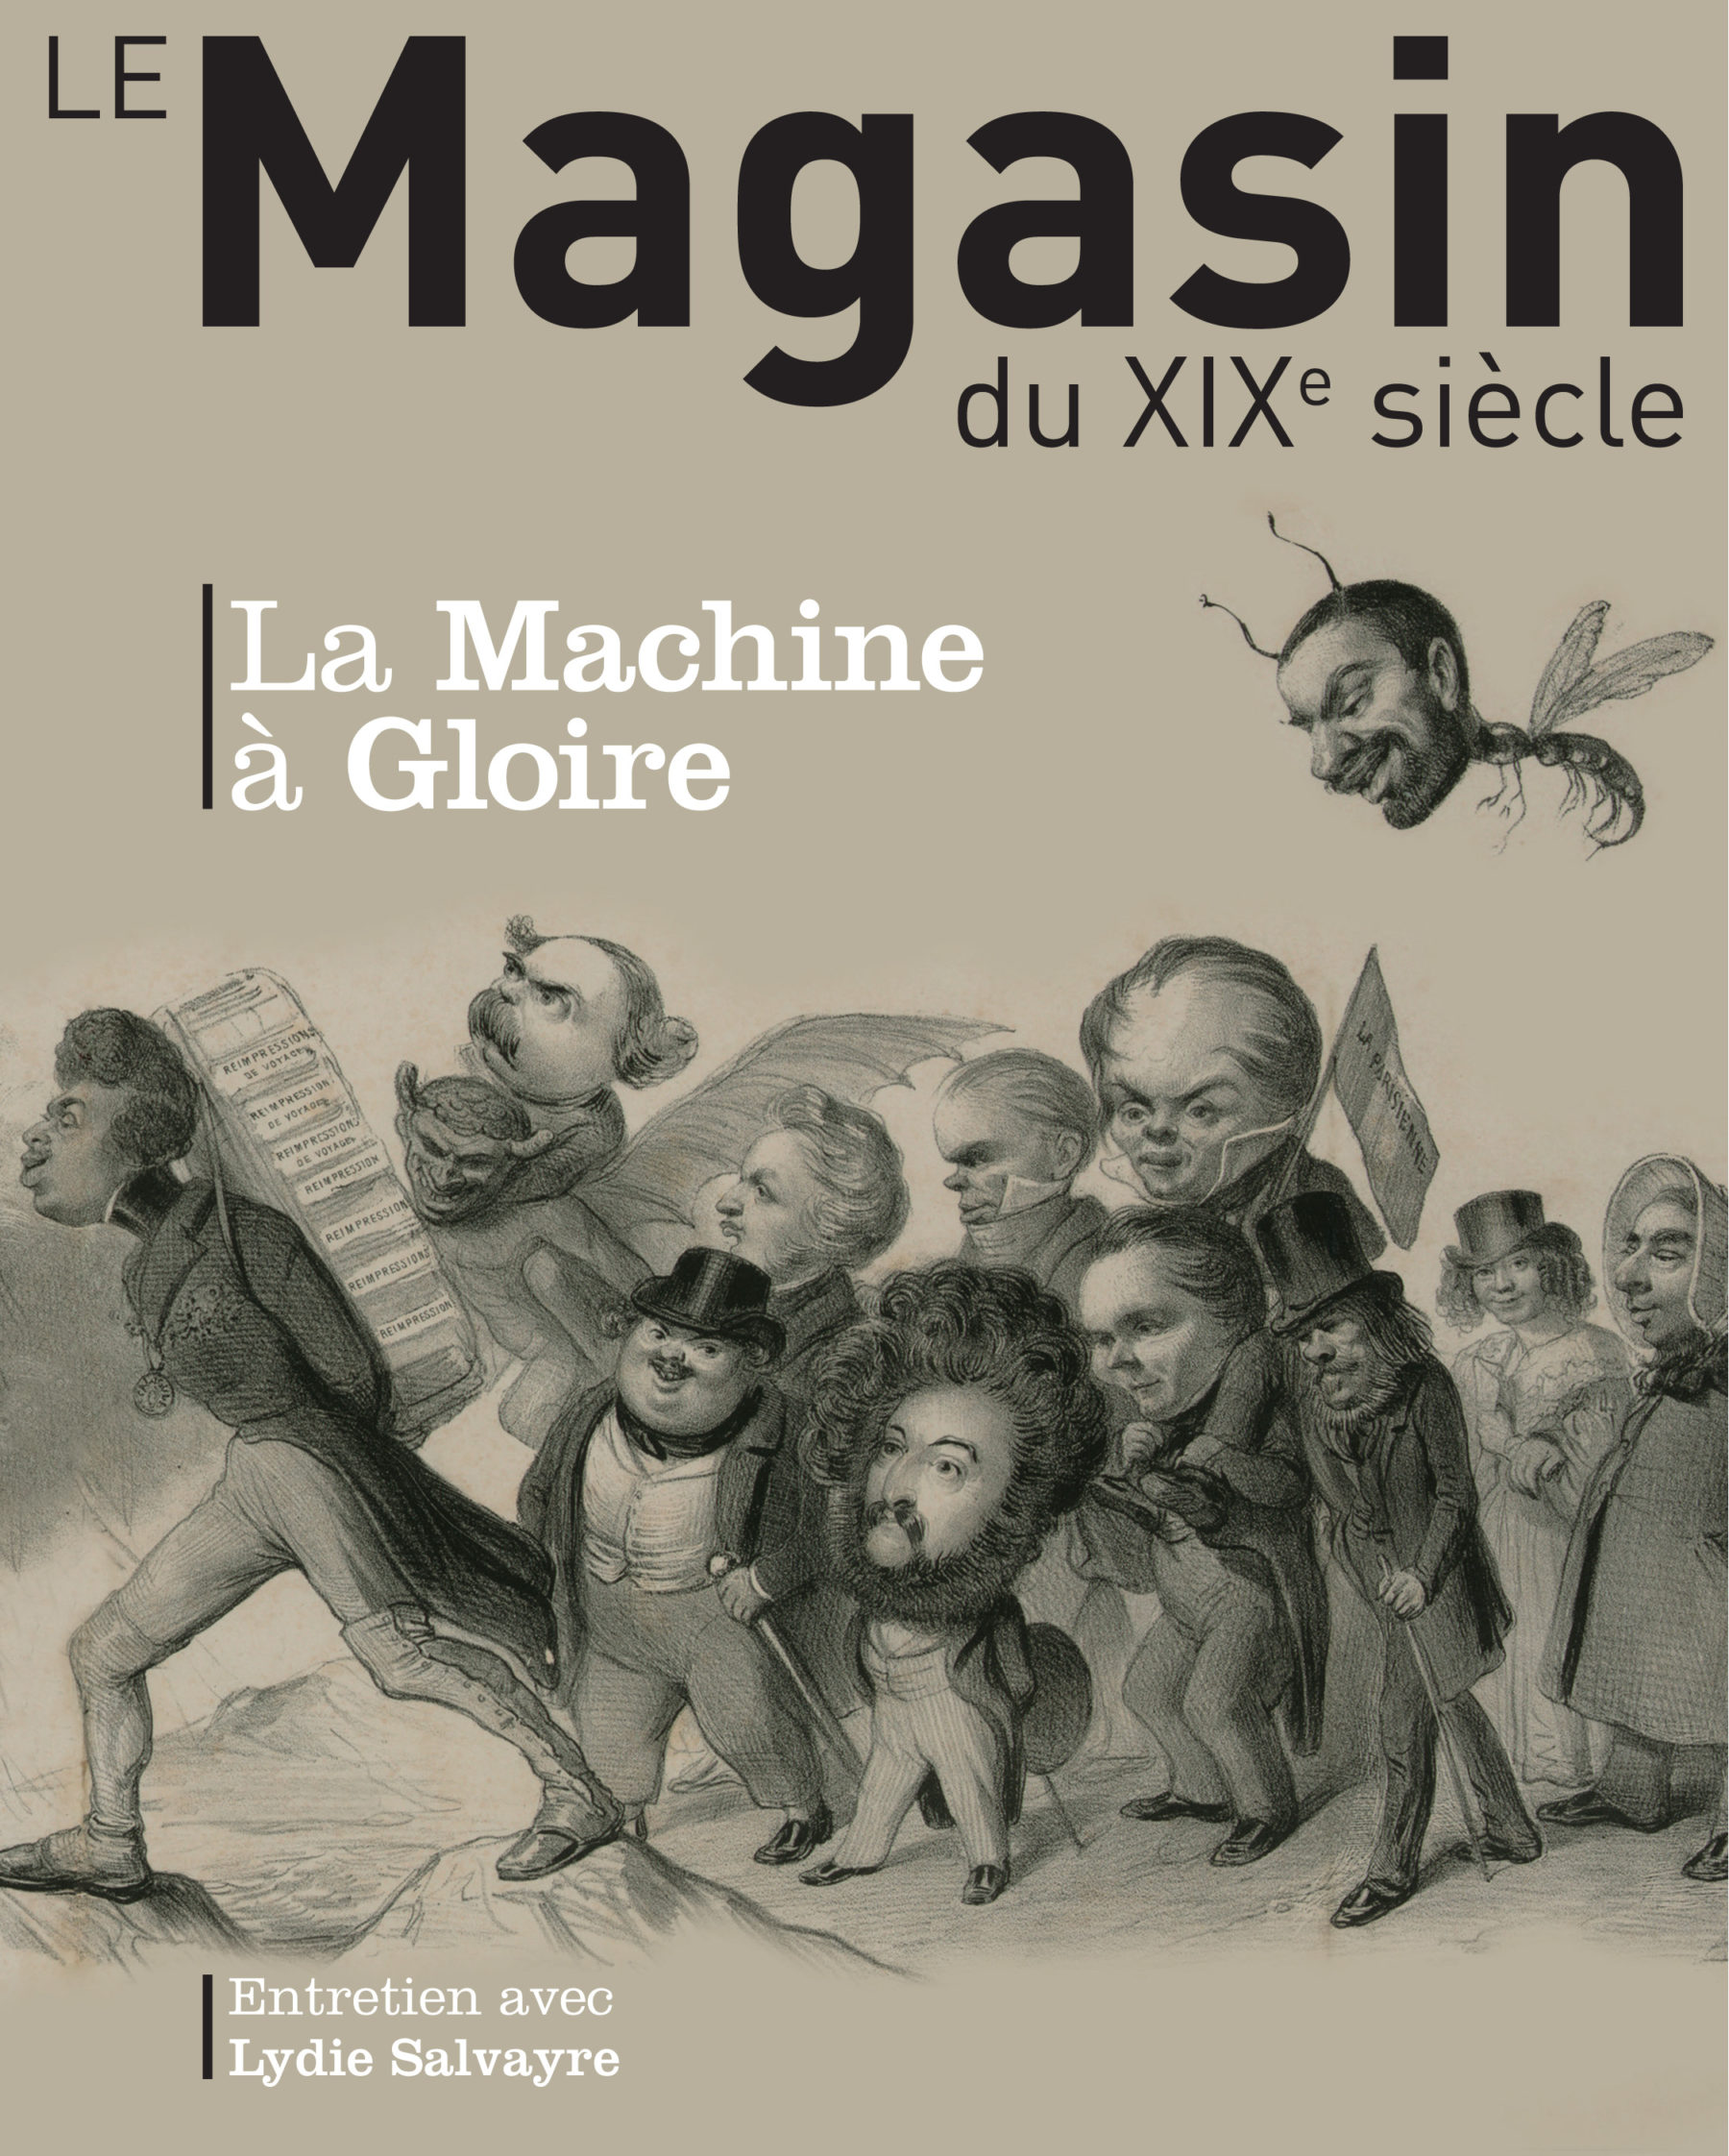 Le Magasin N°7